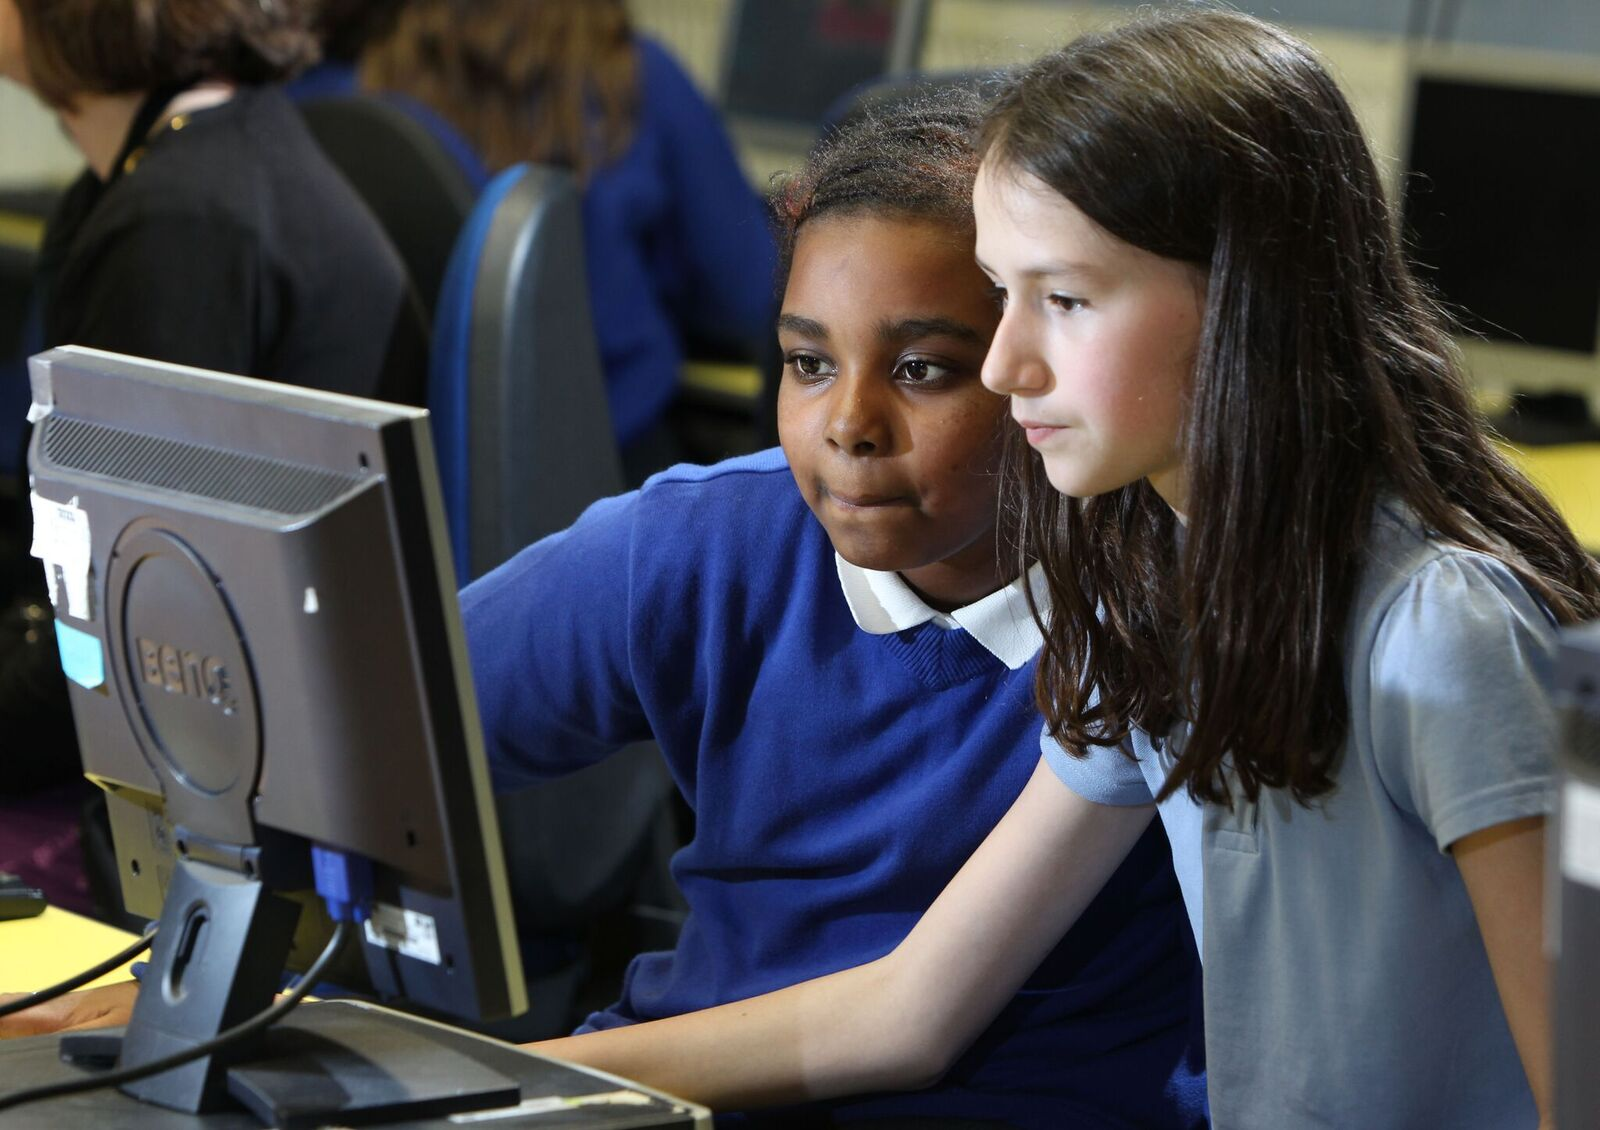 Mentors will be sent into classrooms to help address the gender gap in the digital technology sector